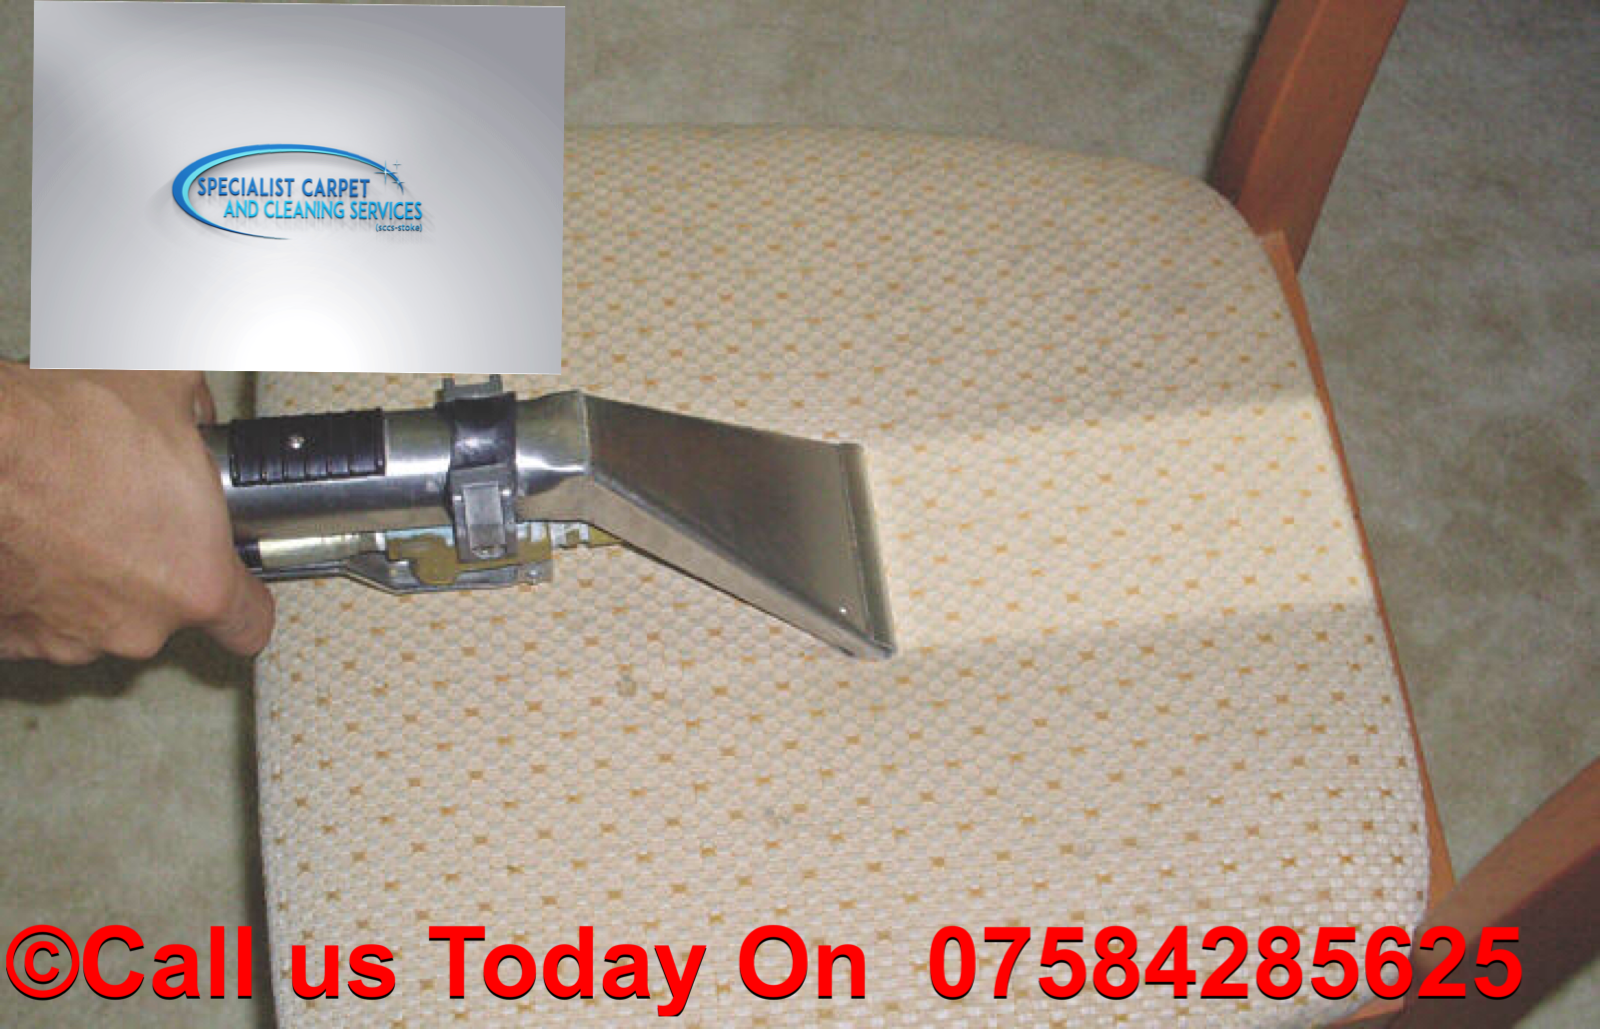 Specialist Carpet & Cleaning Services (SCCS-Stoke)